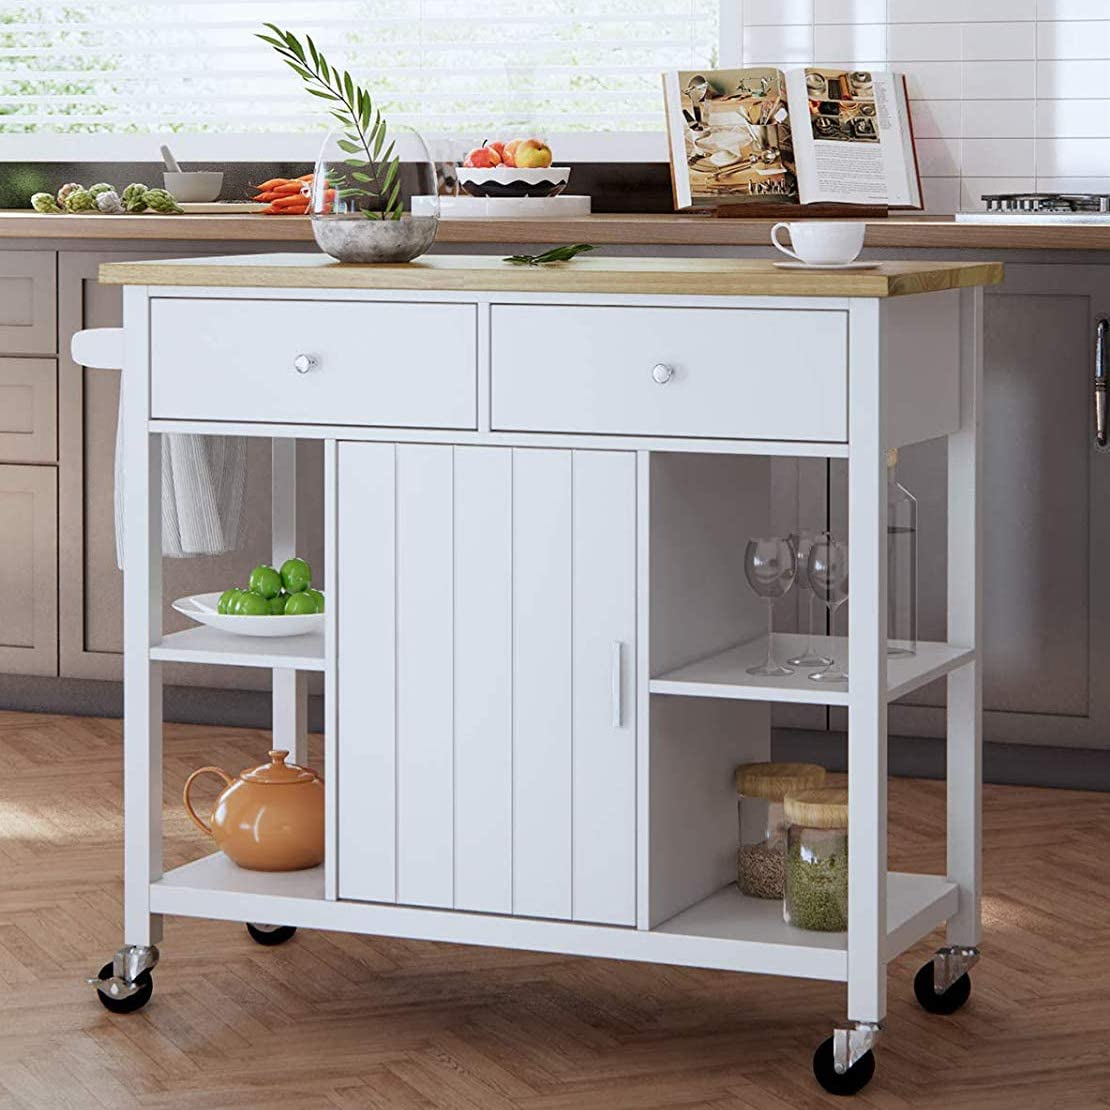 oneinmil Rolling Kitchen Island Cart on Wheels, with Wood Top, Storage and  Drawers, Small Portable 9 Inch, White